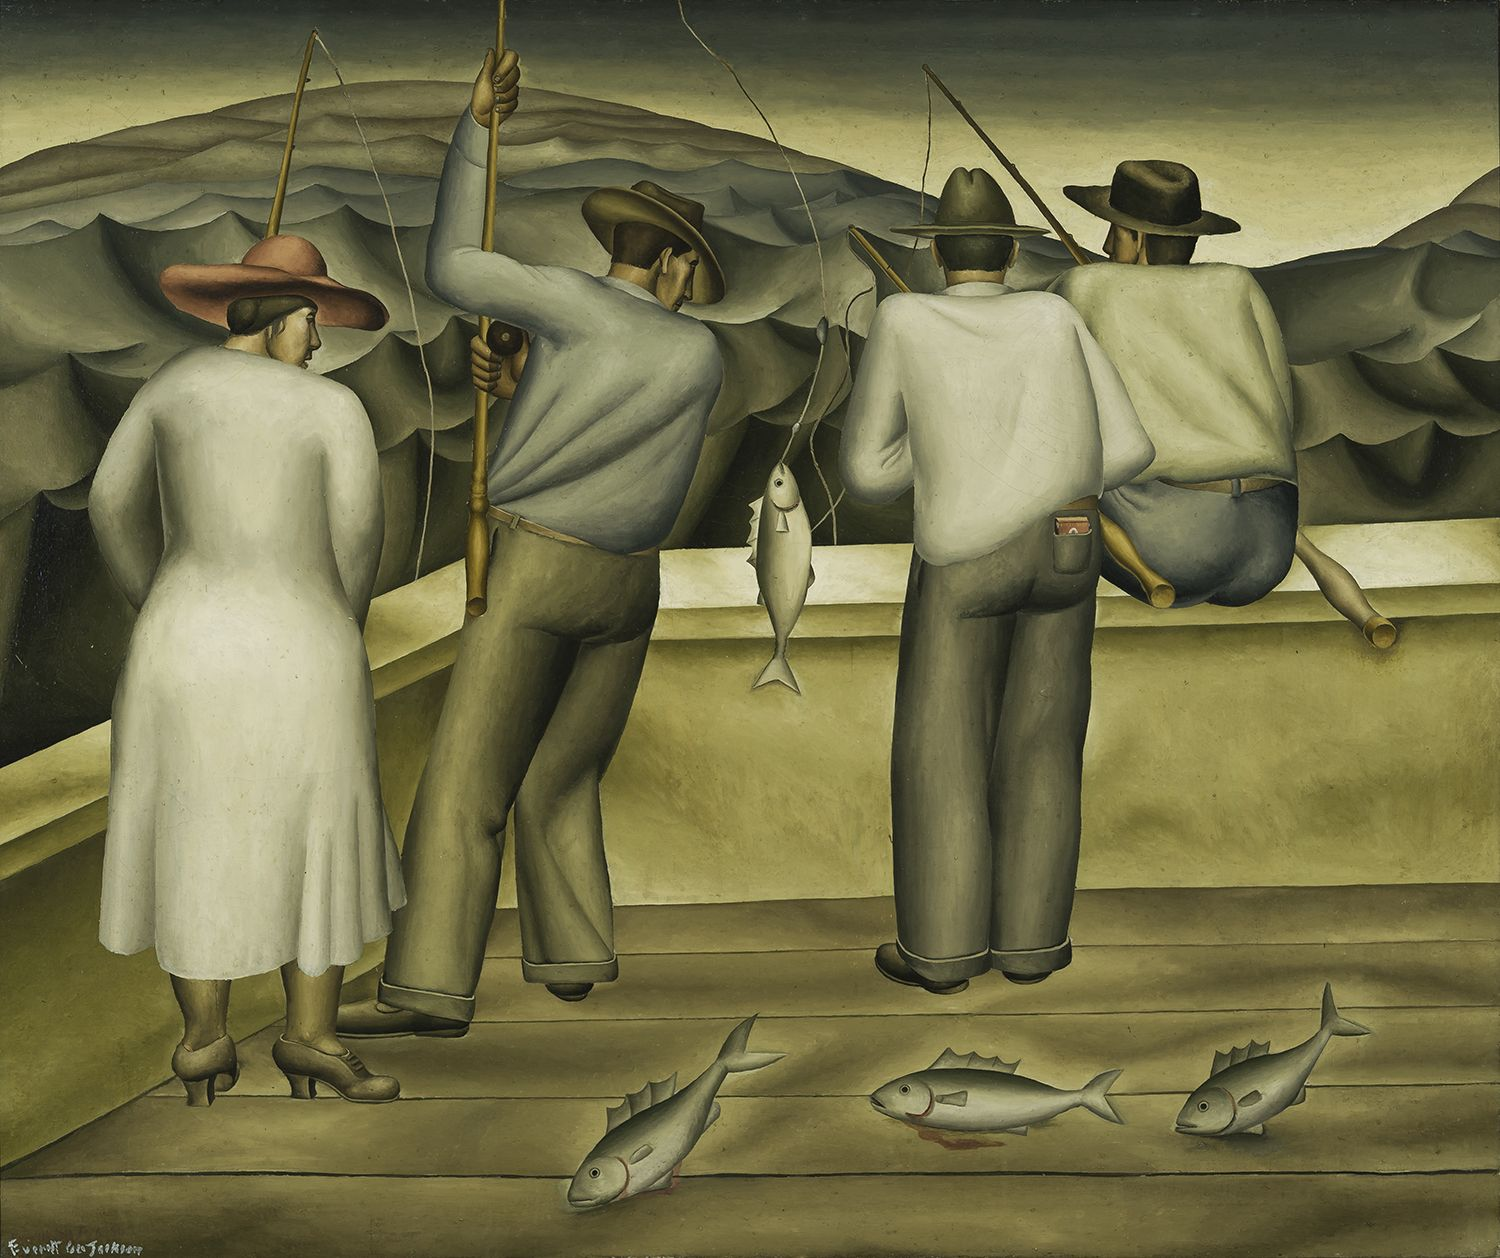 The Fishing Barge, c. 1933, Oil on canvas, 37 1/2 x 44 1/2 in.